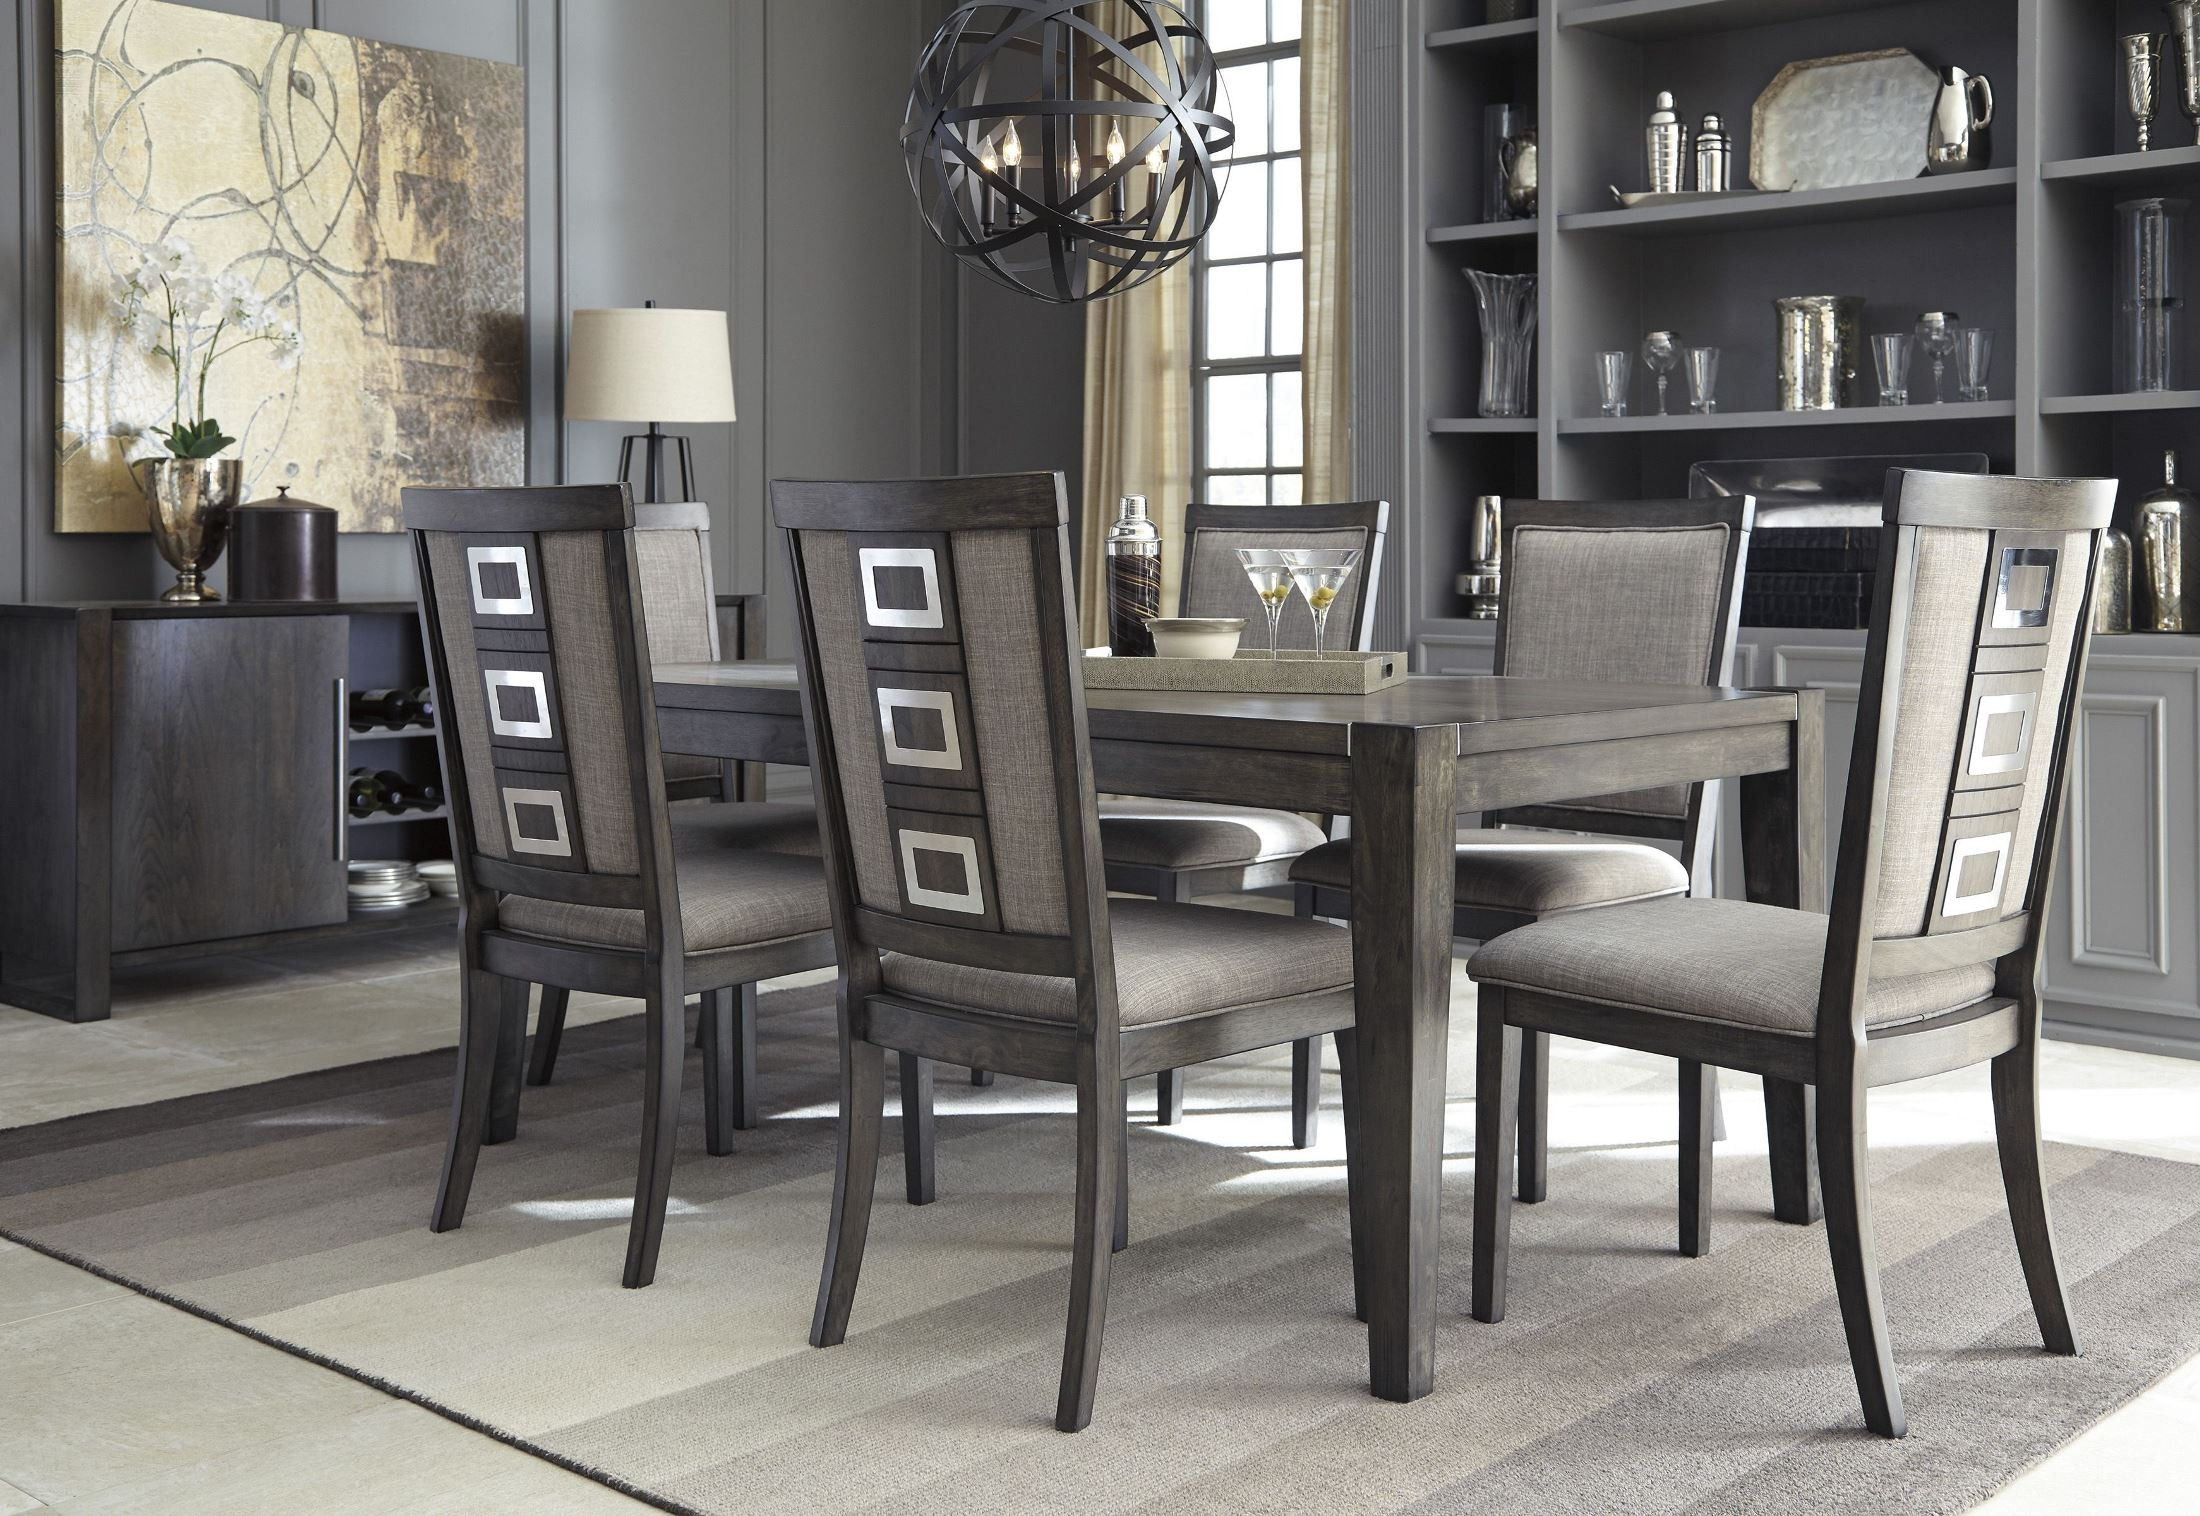 Gray Dining Room Chairs Chadoni Gray Rectangular Extendable Dining Room Set From